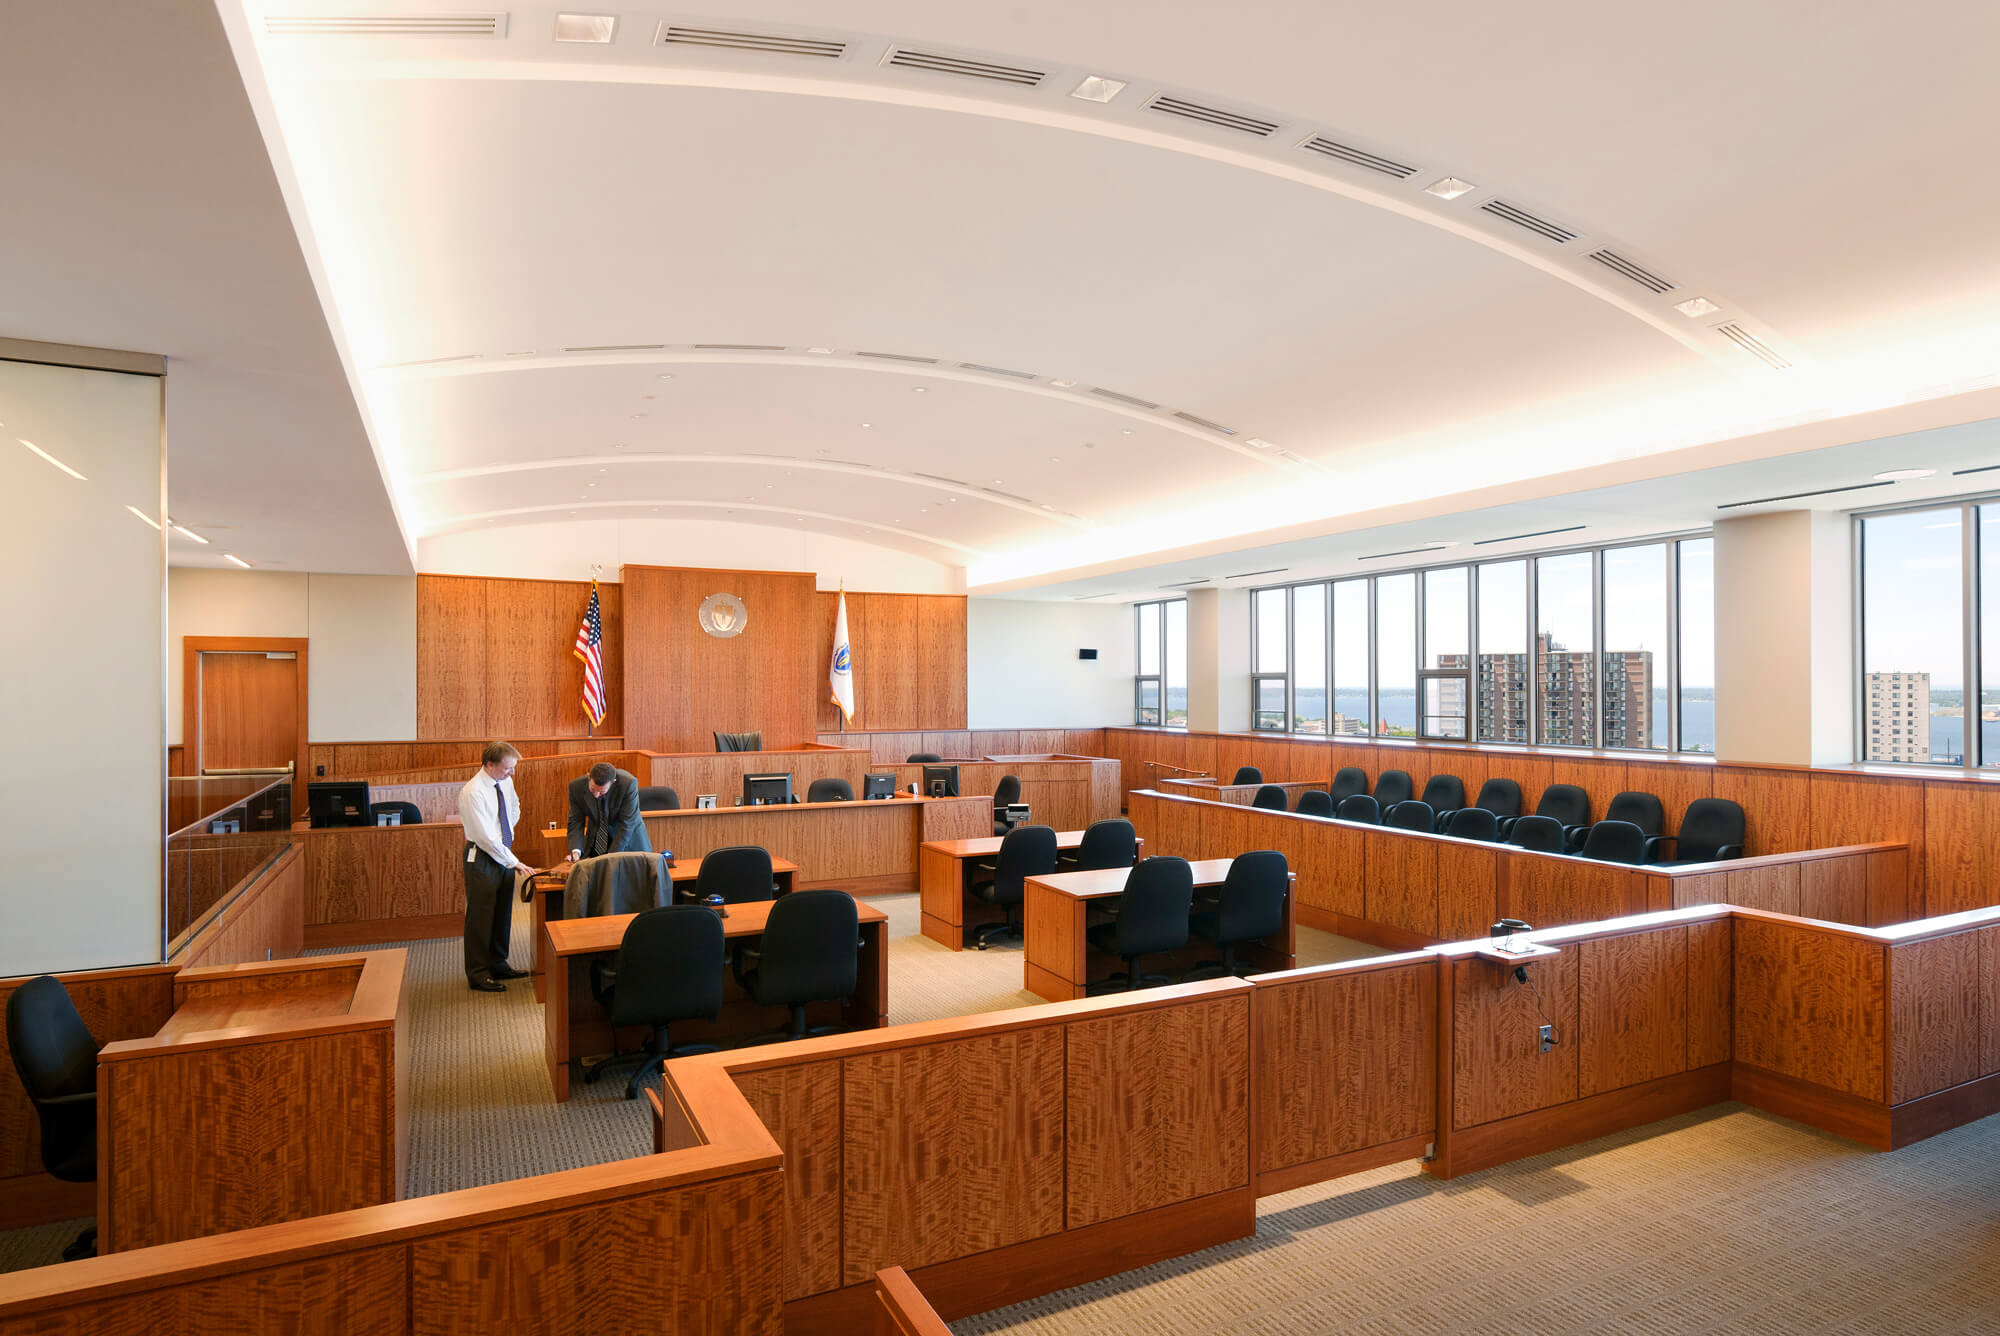 Interior of a courtroom with wooden furniture, natural light, and a slightly vaulted ceiling.